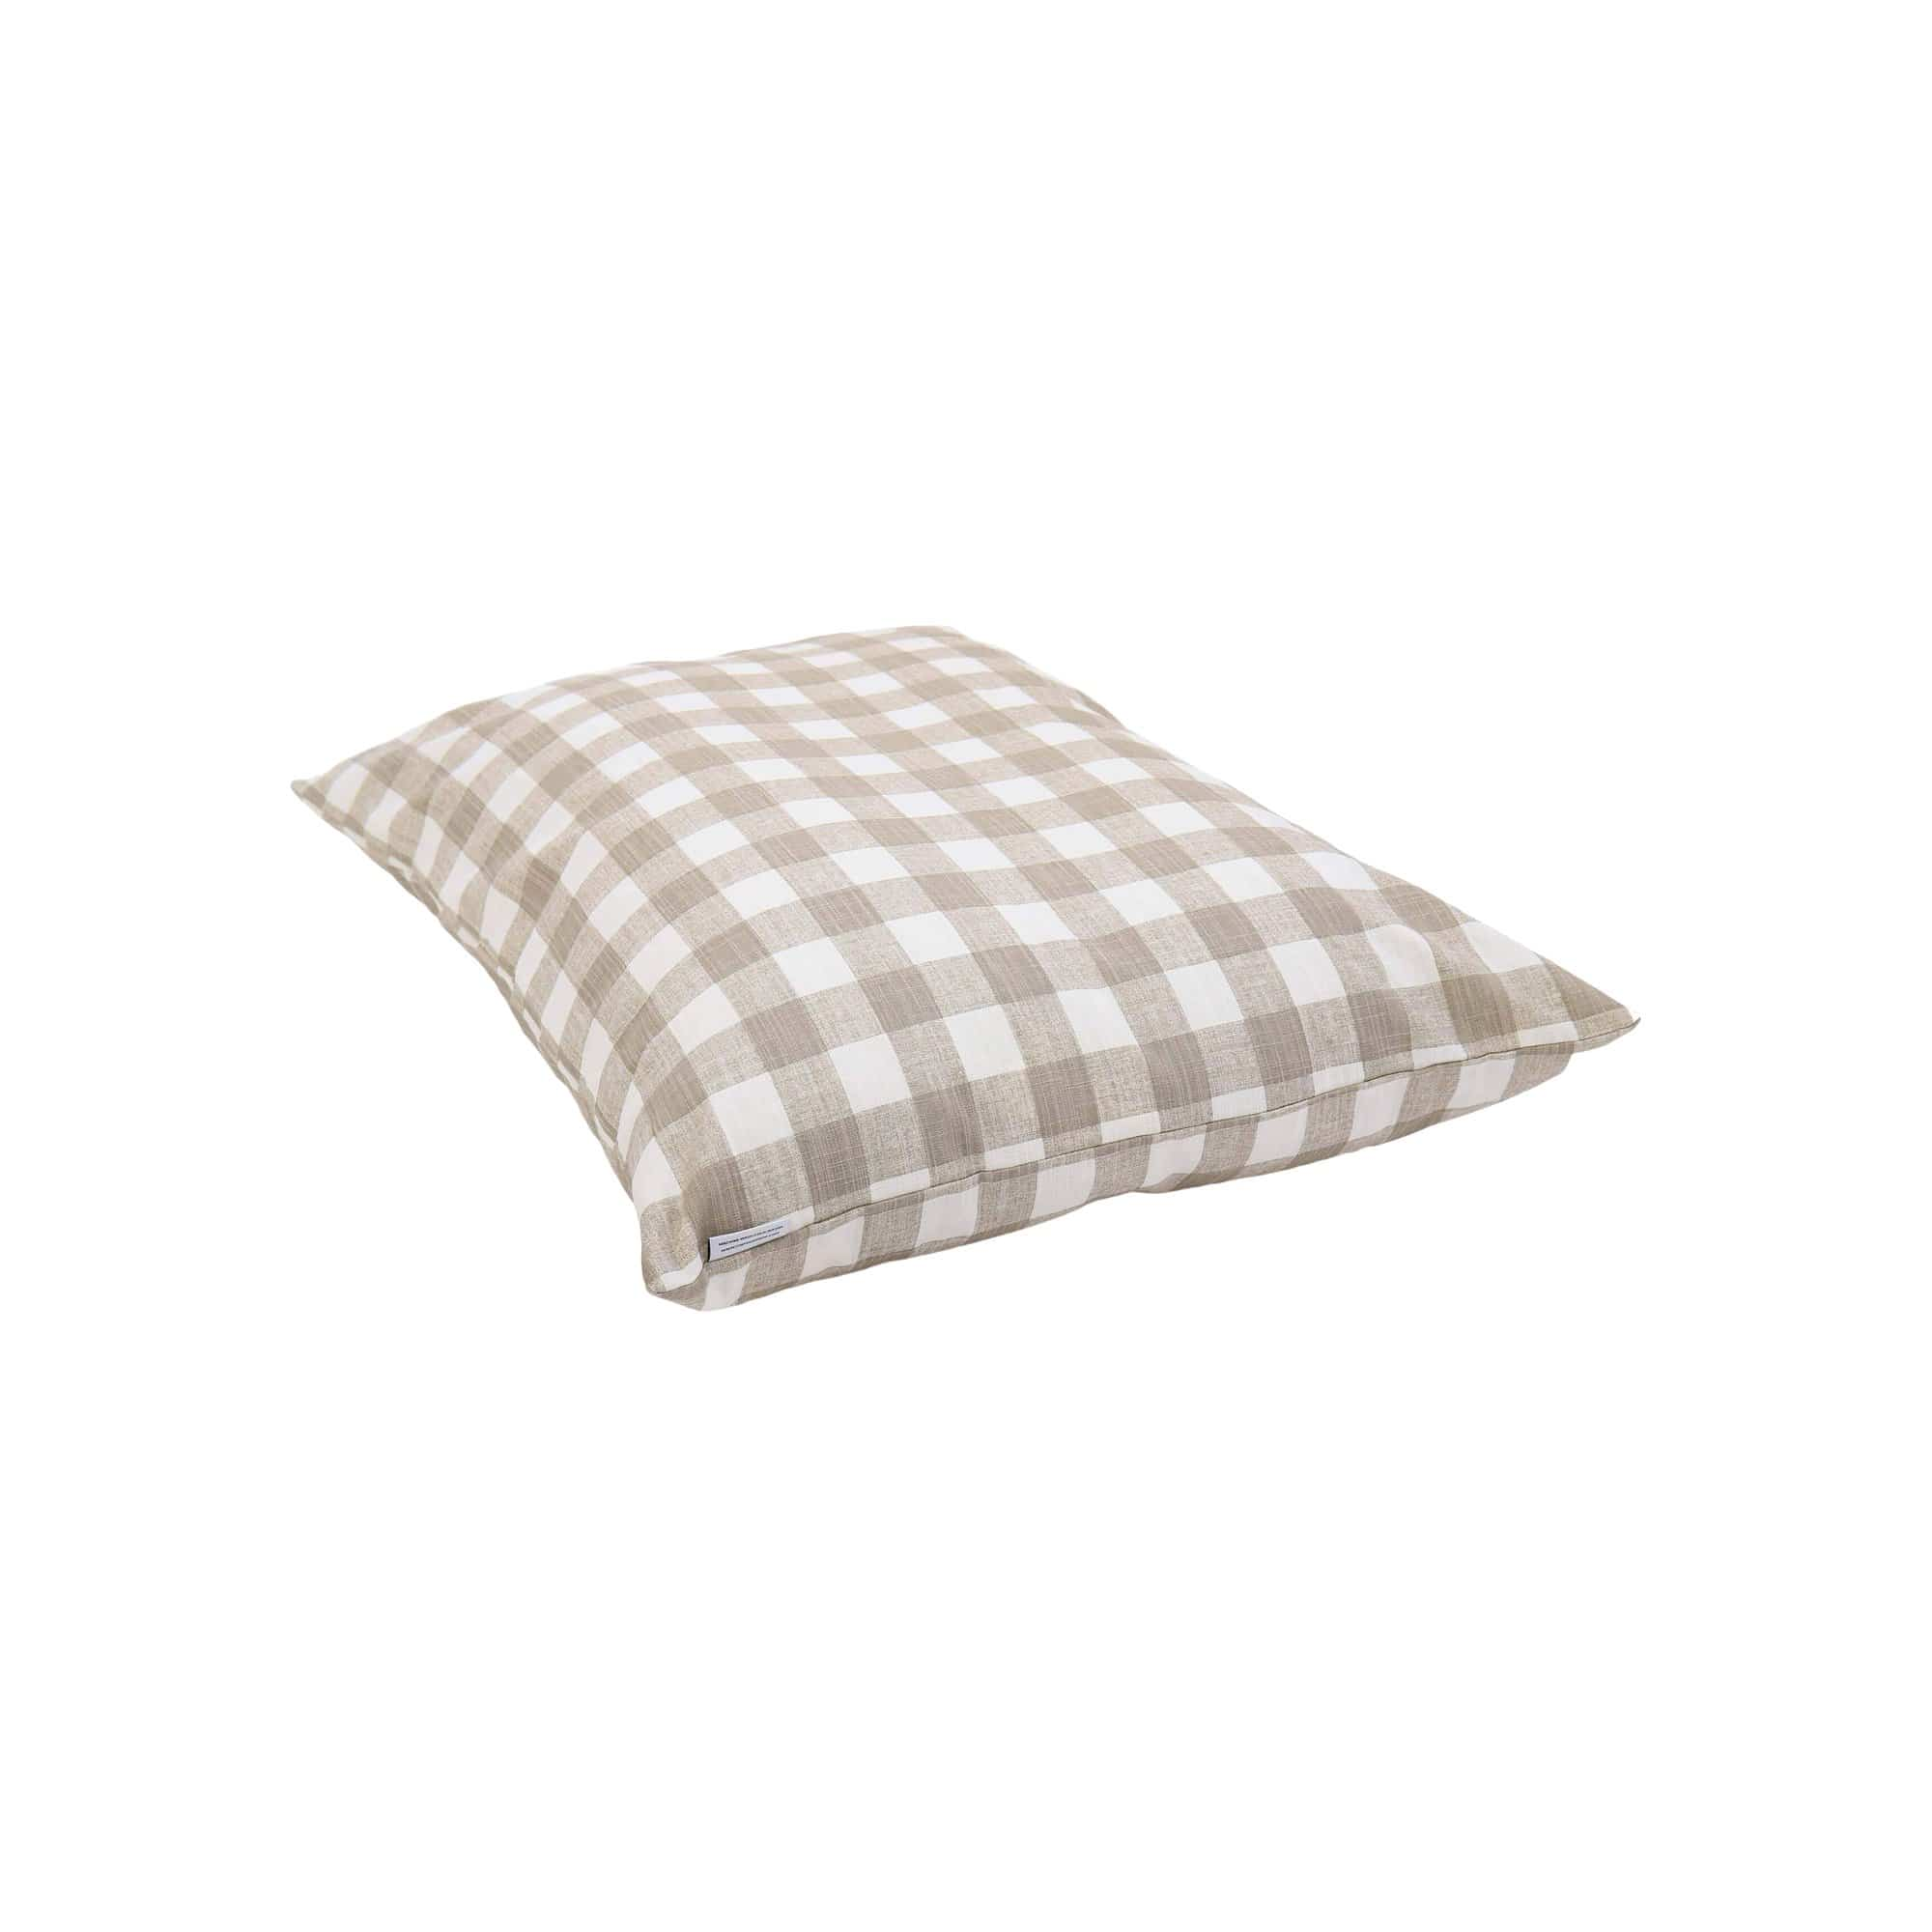 Warm Stone Gingham Check Dog Bed